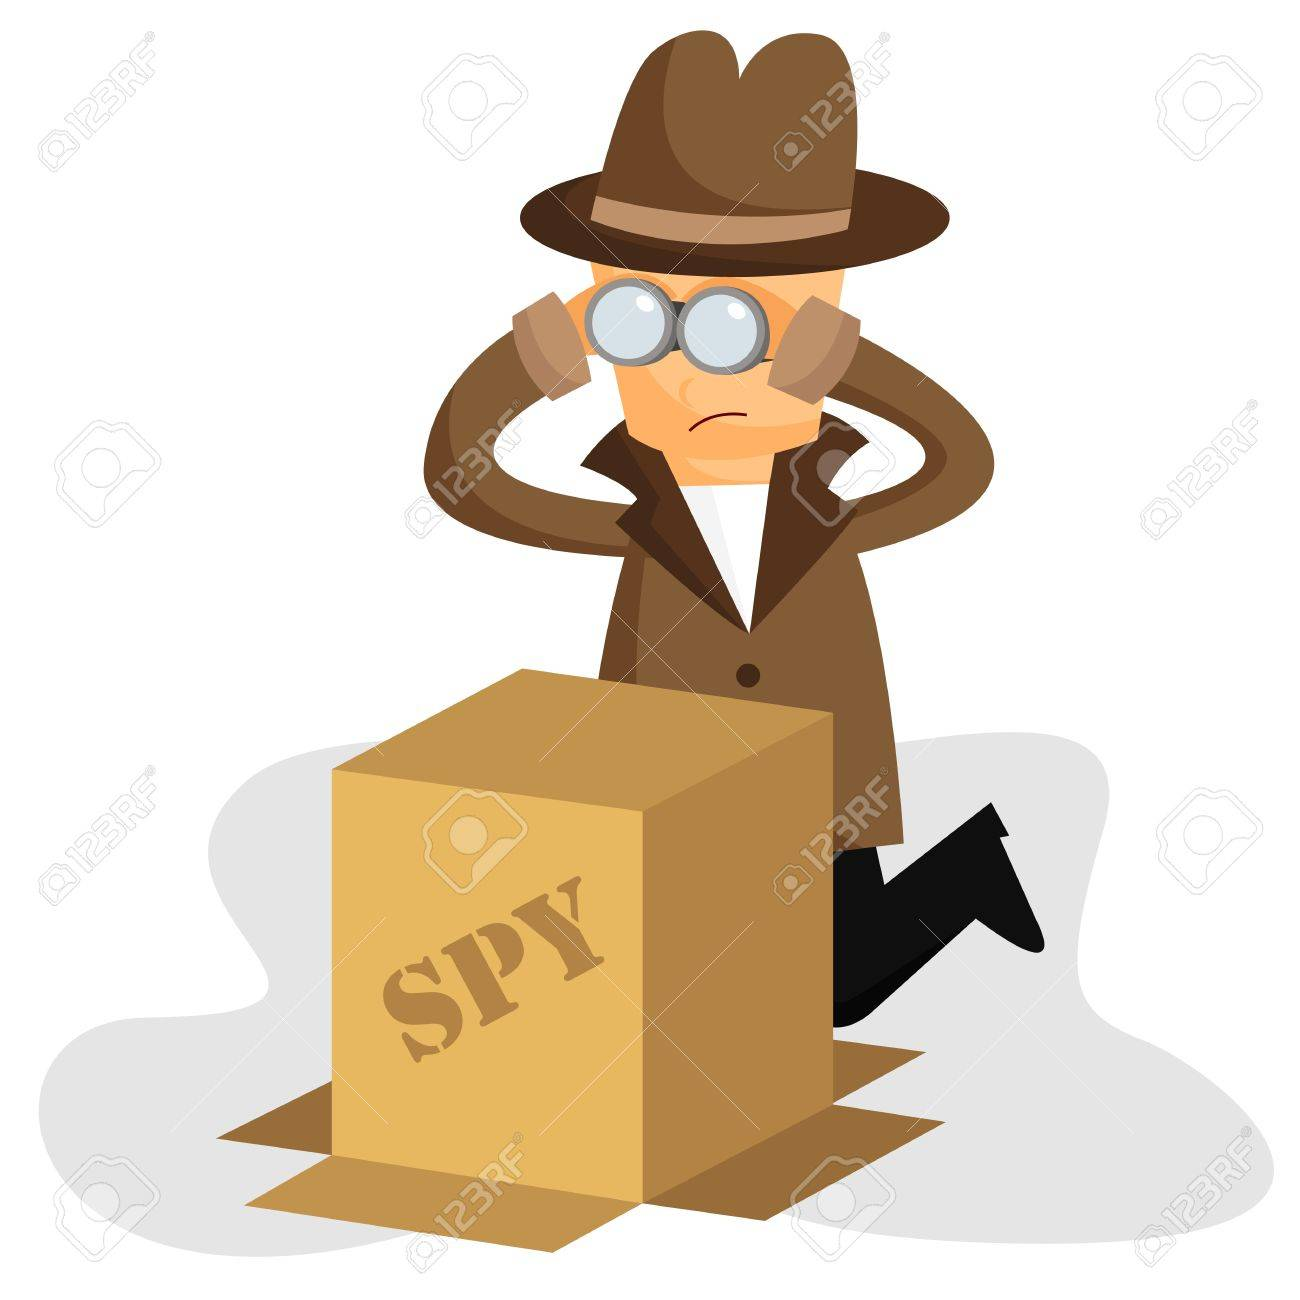 Spying Stock Vector - 20694452